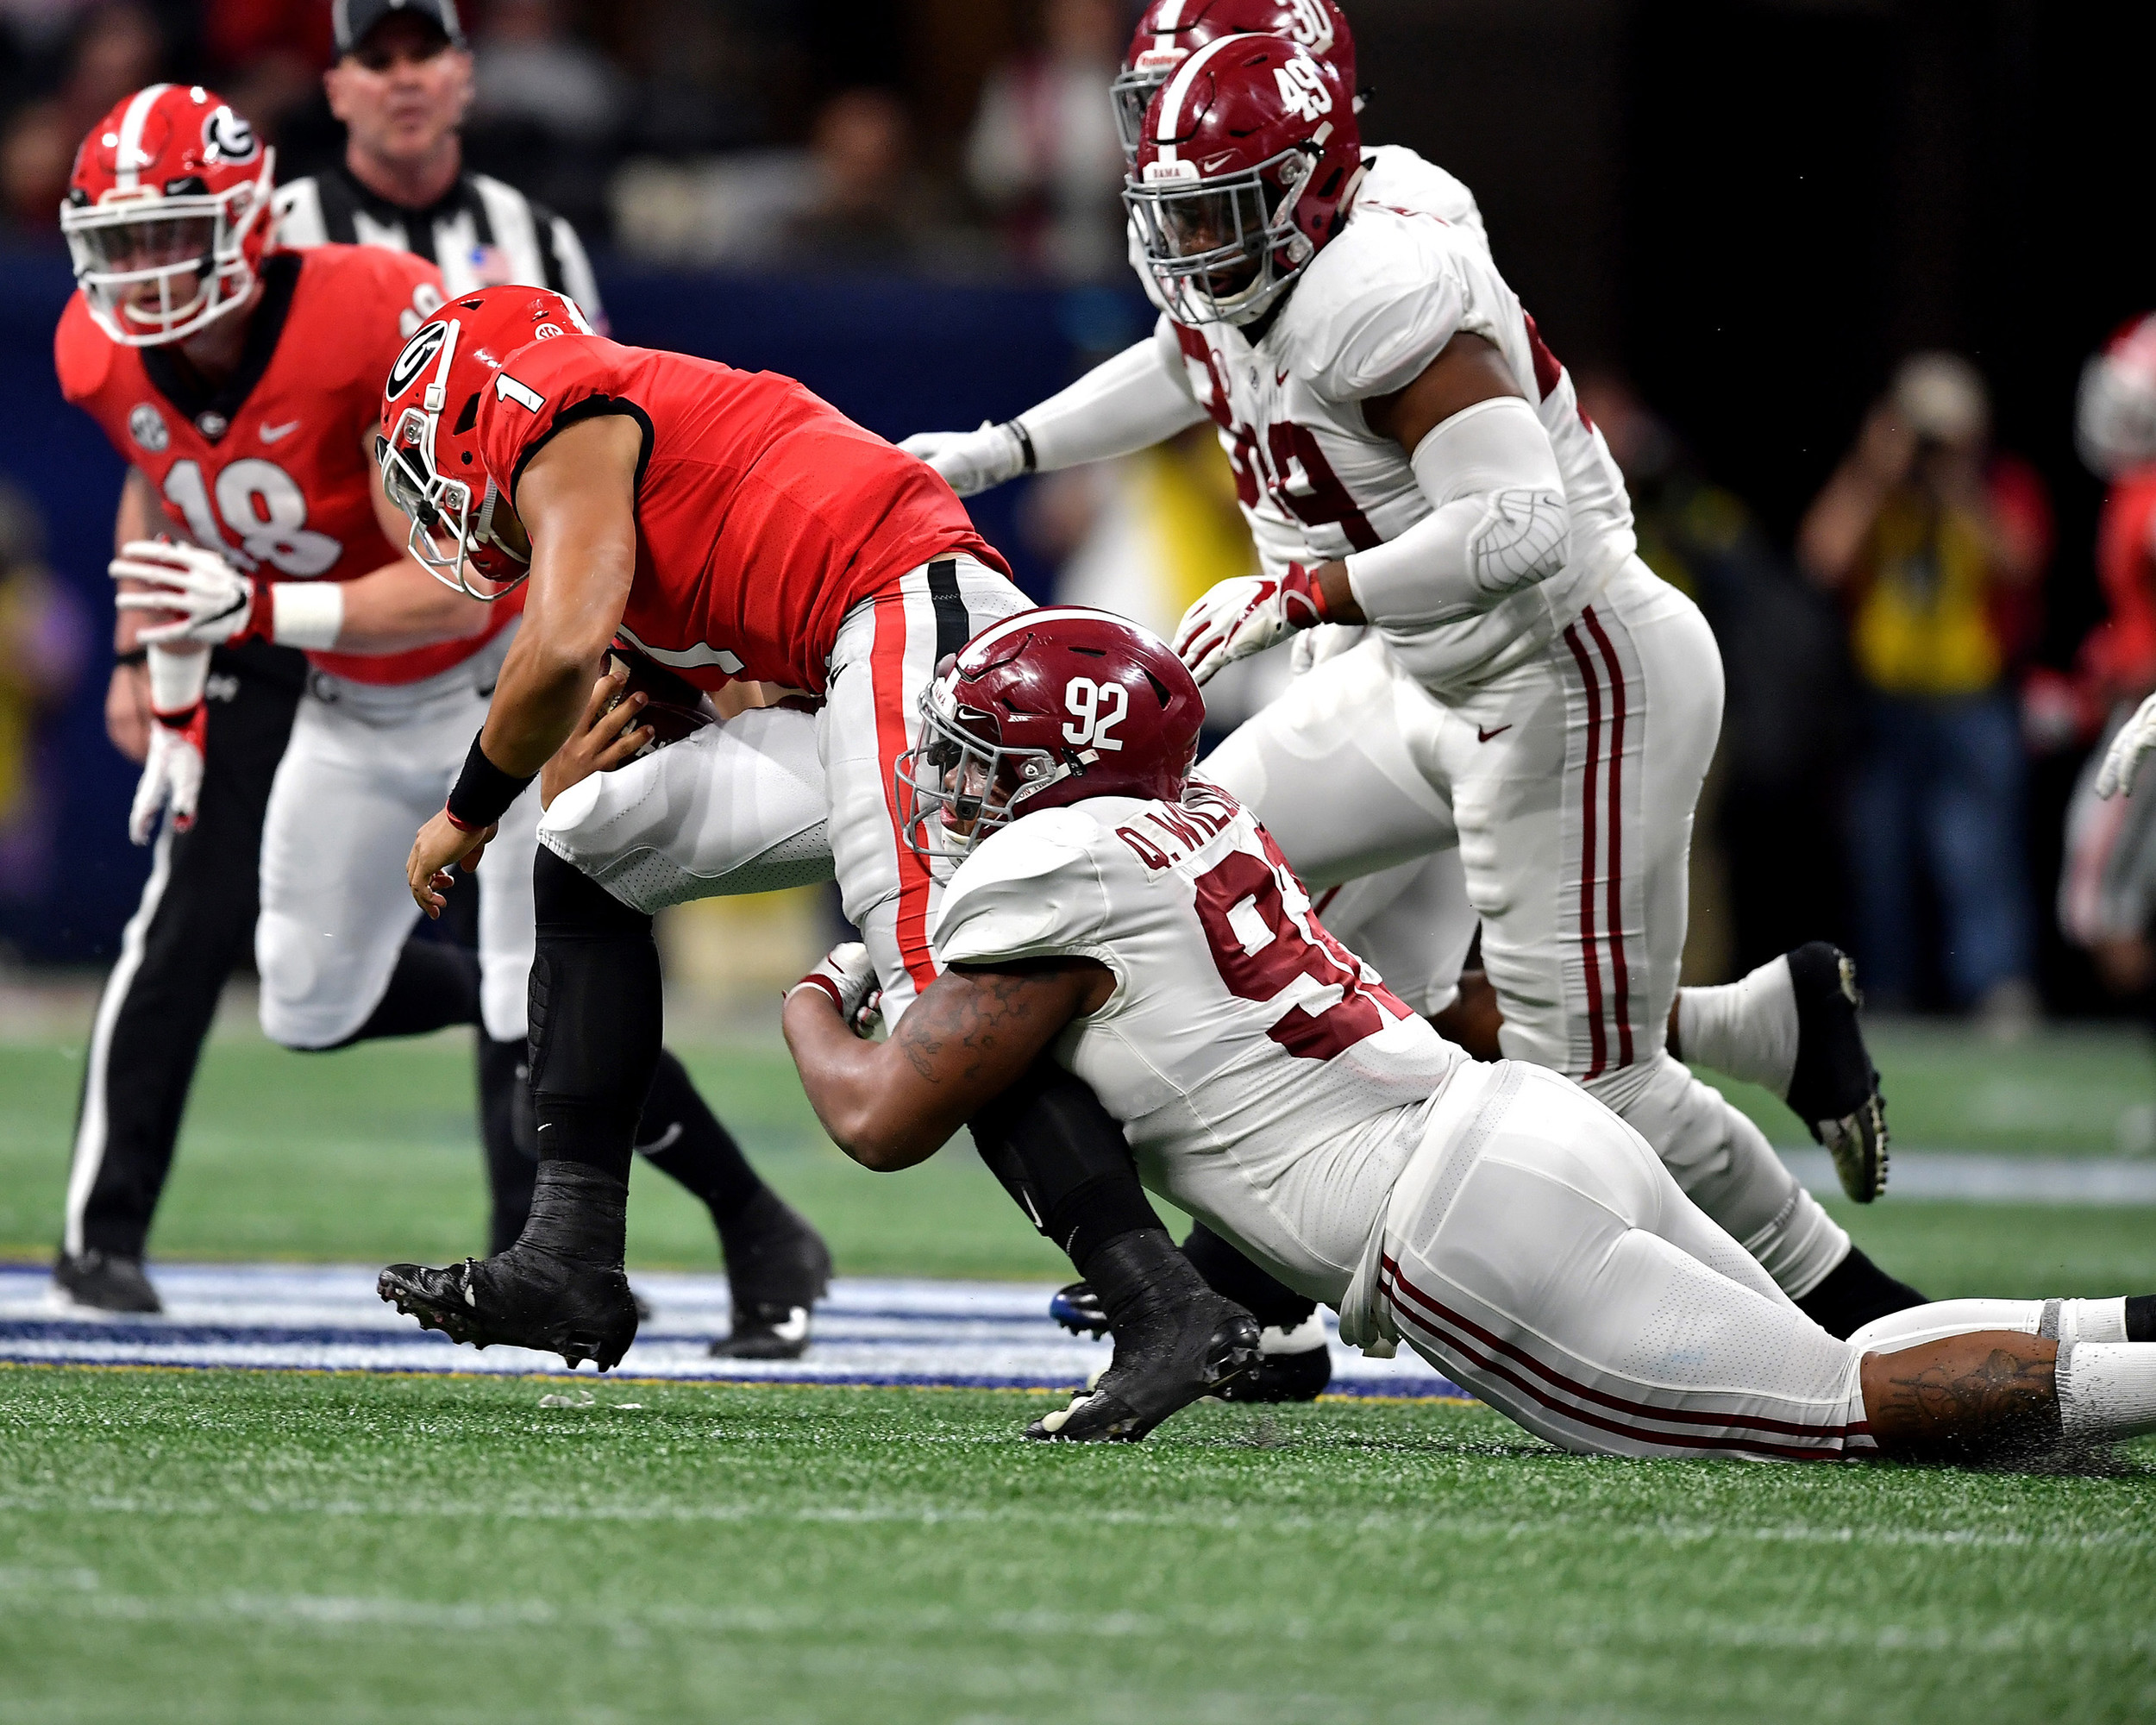 Alabama Crimson Tide defensive lineman Quinnen Williams (92) tackles Georgia Bulldogs quarterback Justin Fields (1) in the first half of the 2018 SEC Championship football game at Mercedes-Benz Stadium in Atlanta, Ga., on Dec. 1, 2018. Alabama wins 35-28. (Photo by Lee Walls)